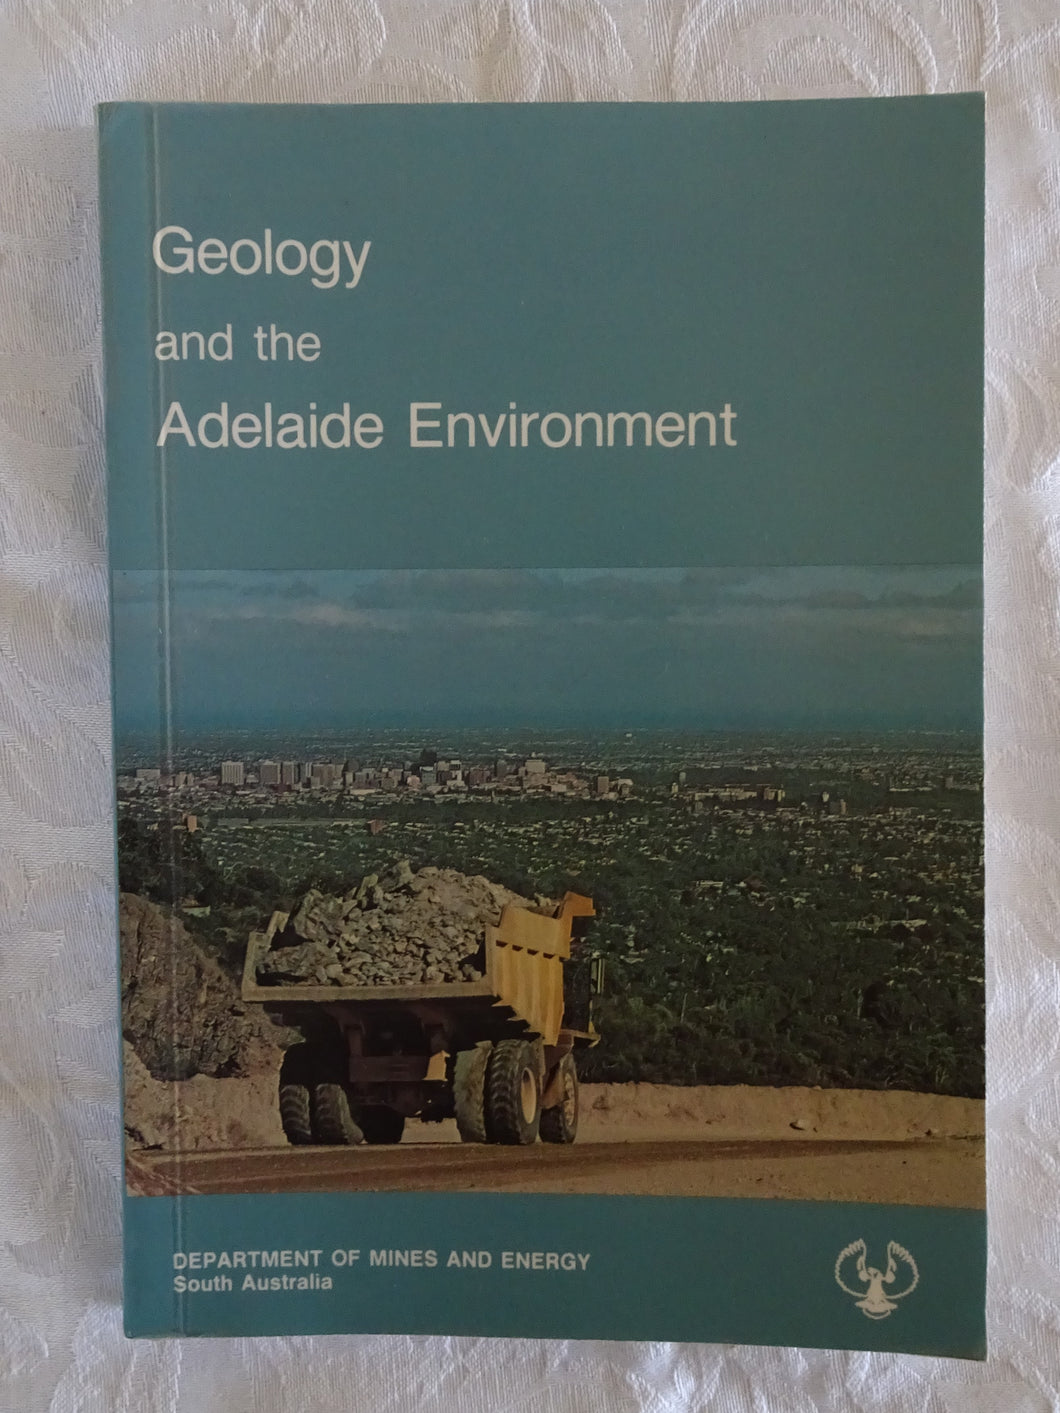 Geology and the Adelaide Environment by J. Selby